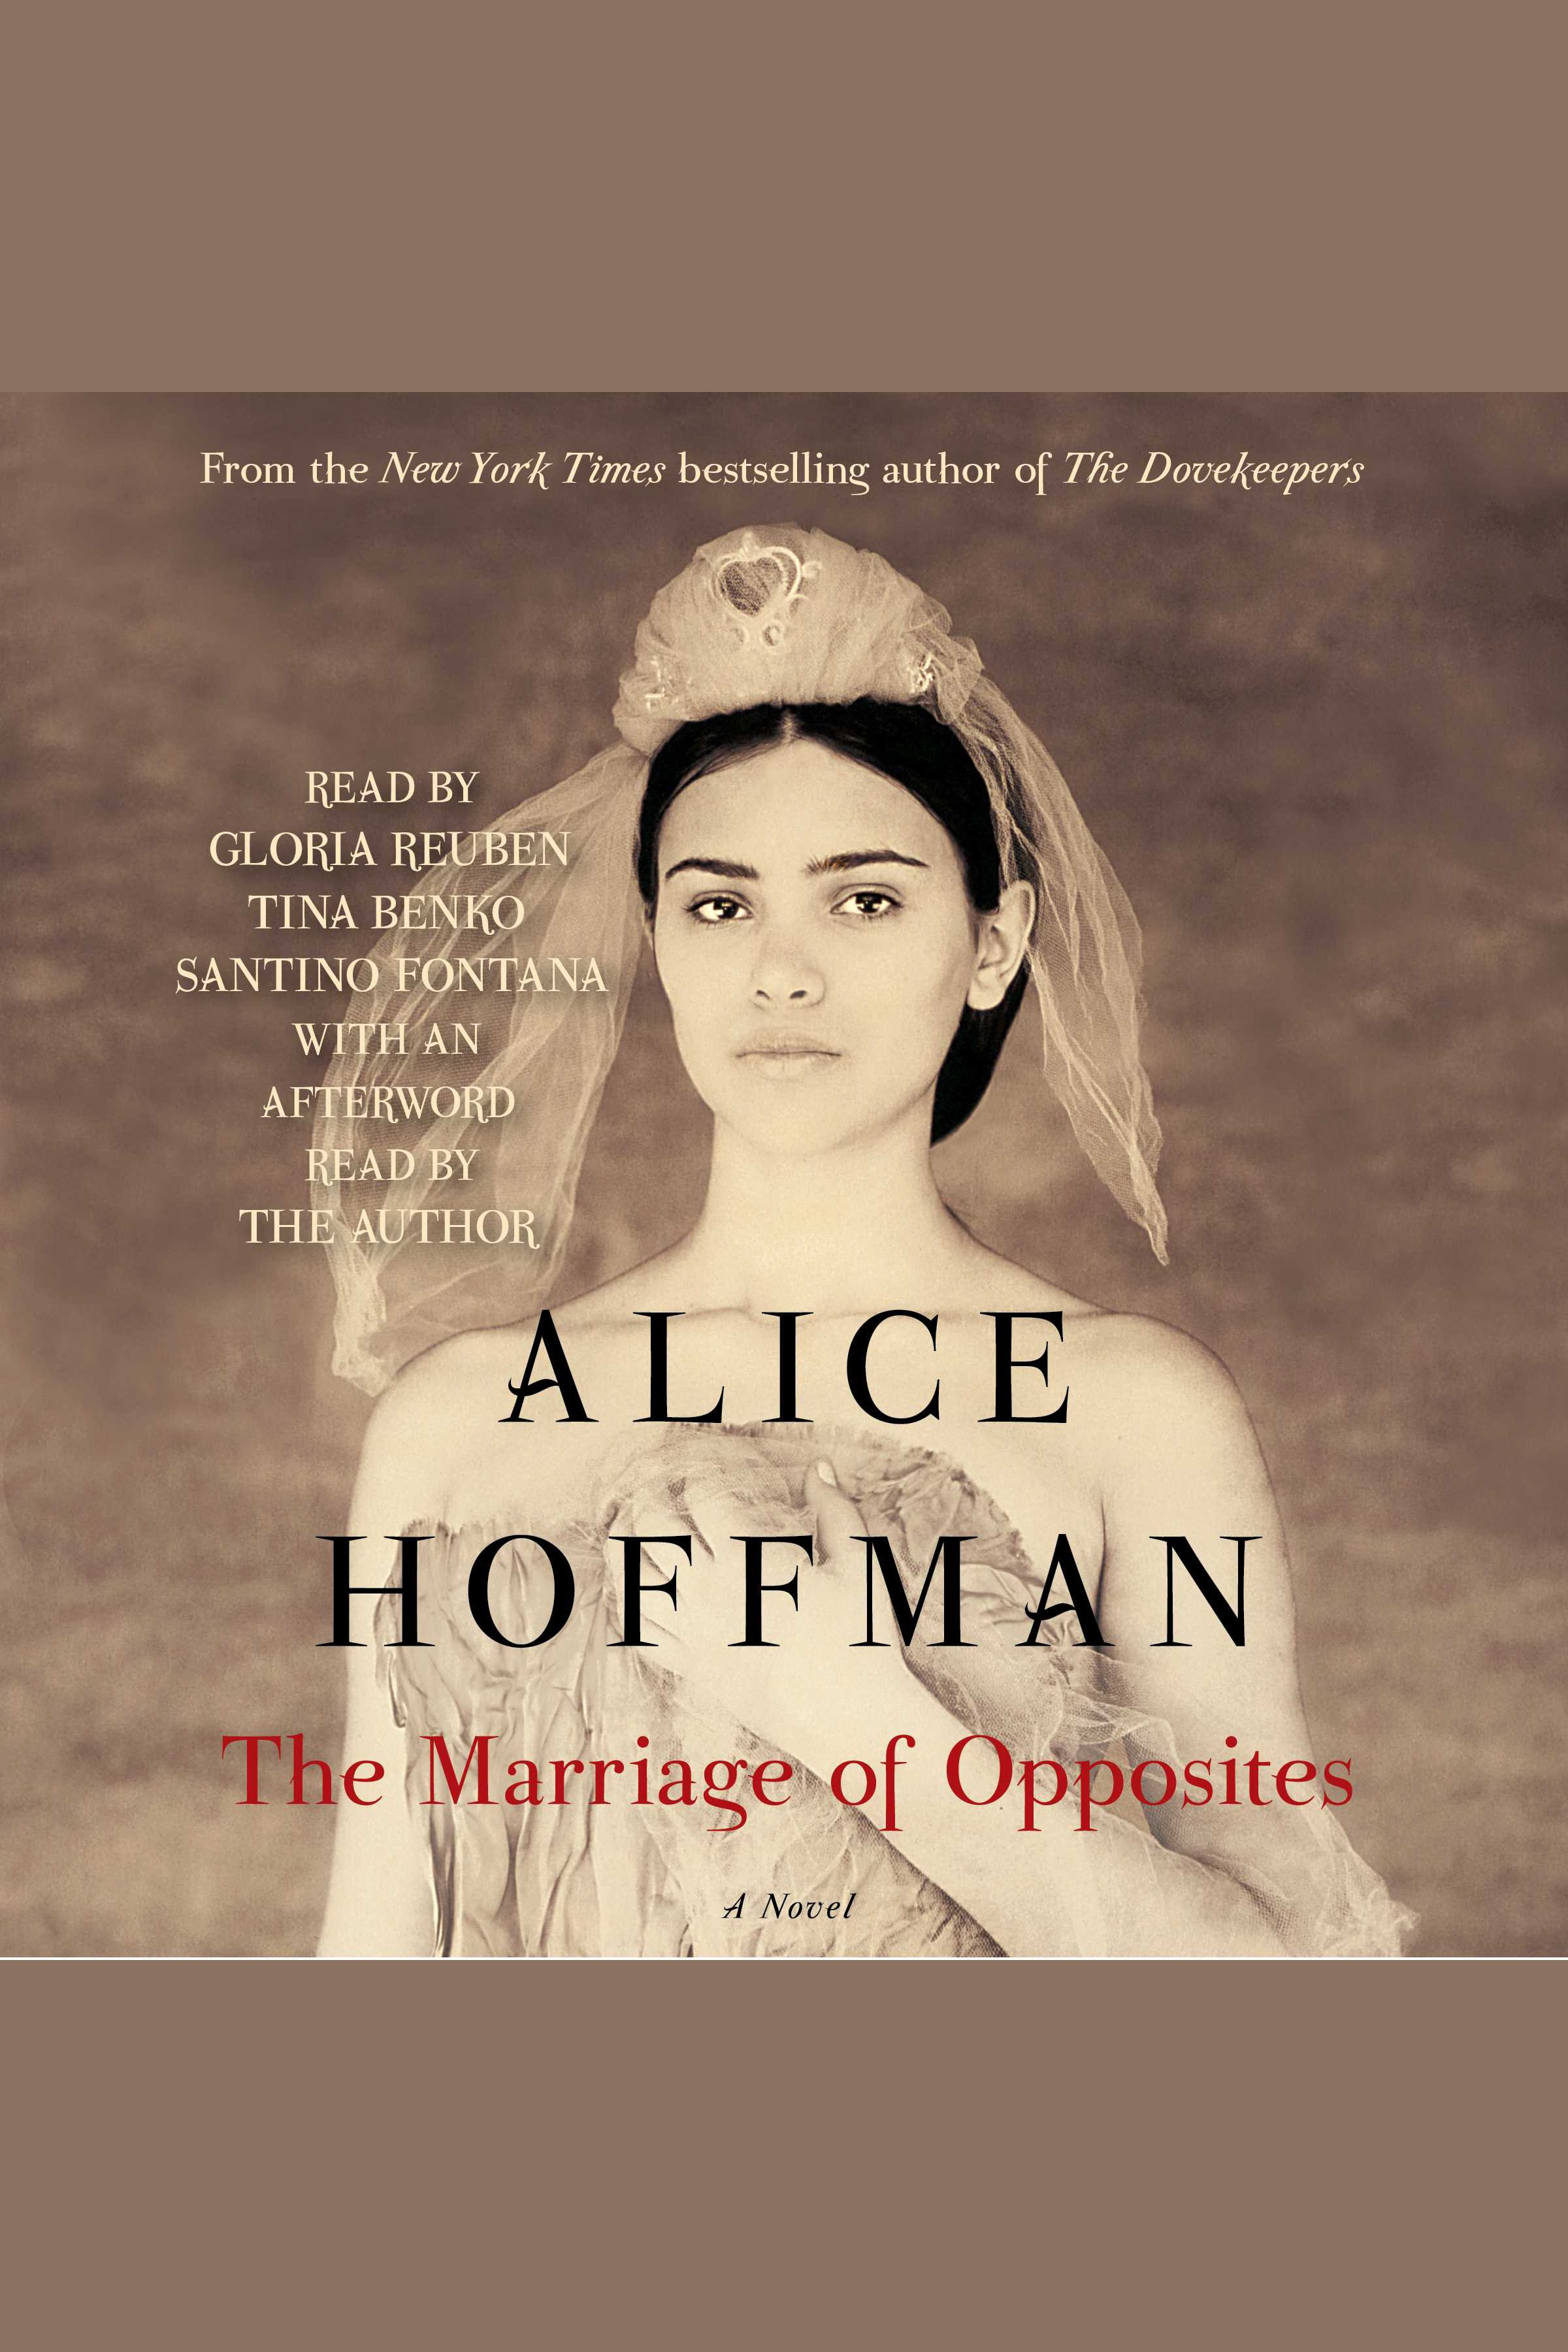 The marriage of opposites cover image